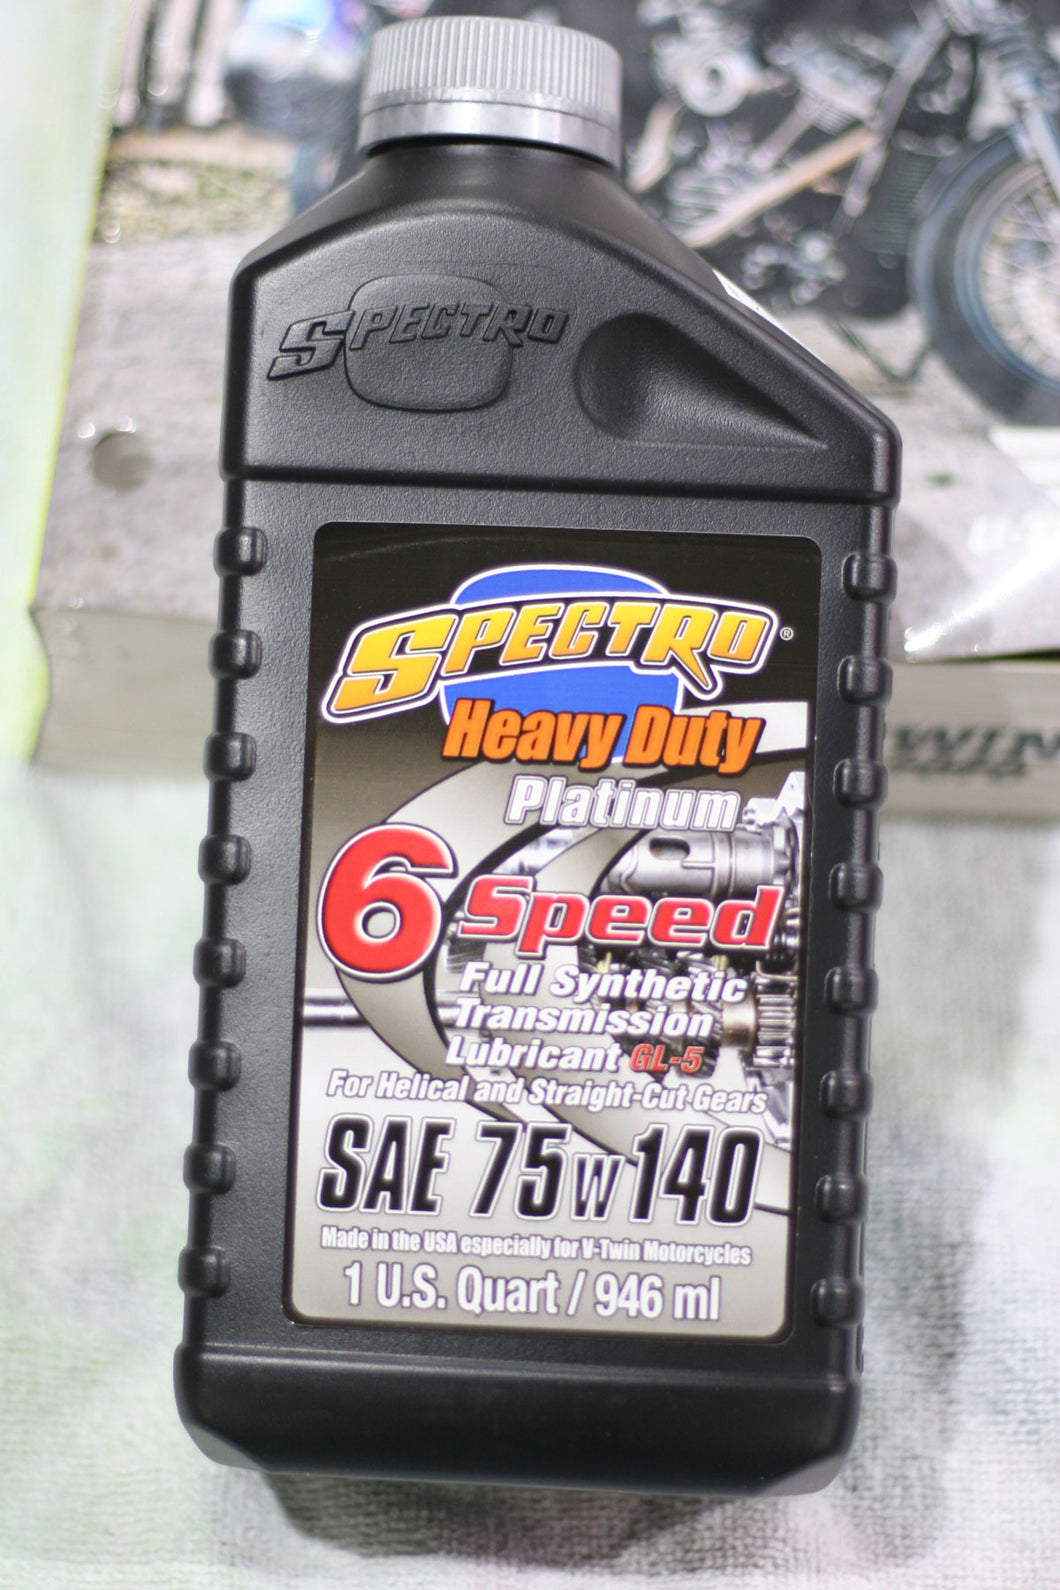 Spectro Heavy Duty Platinum 75/140 6-speed Transmission Oil, 1 US Qt